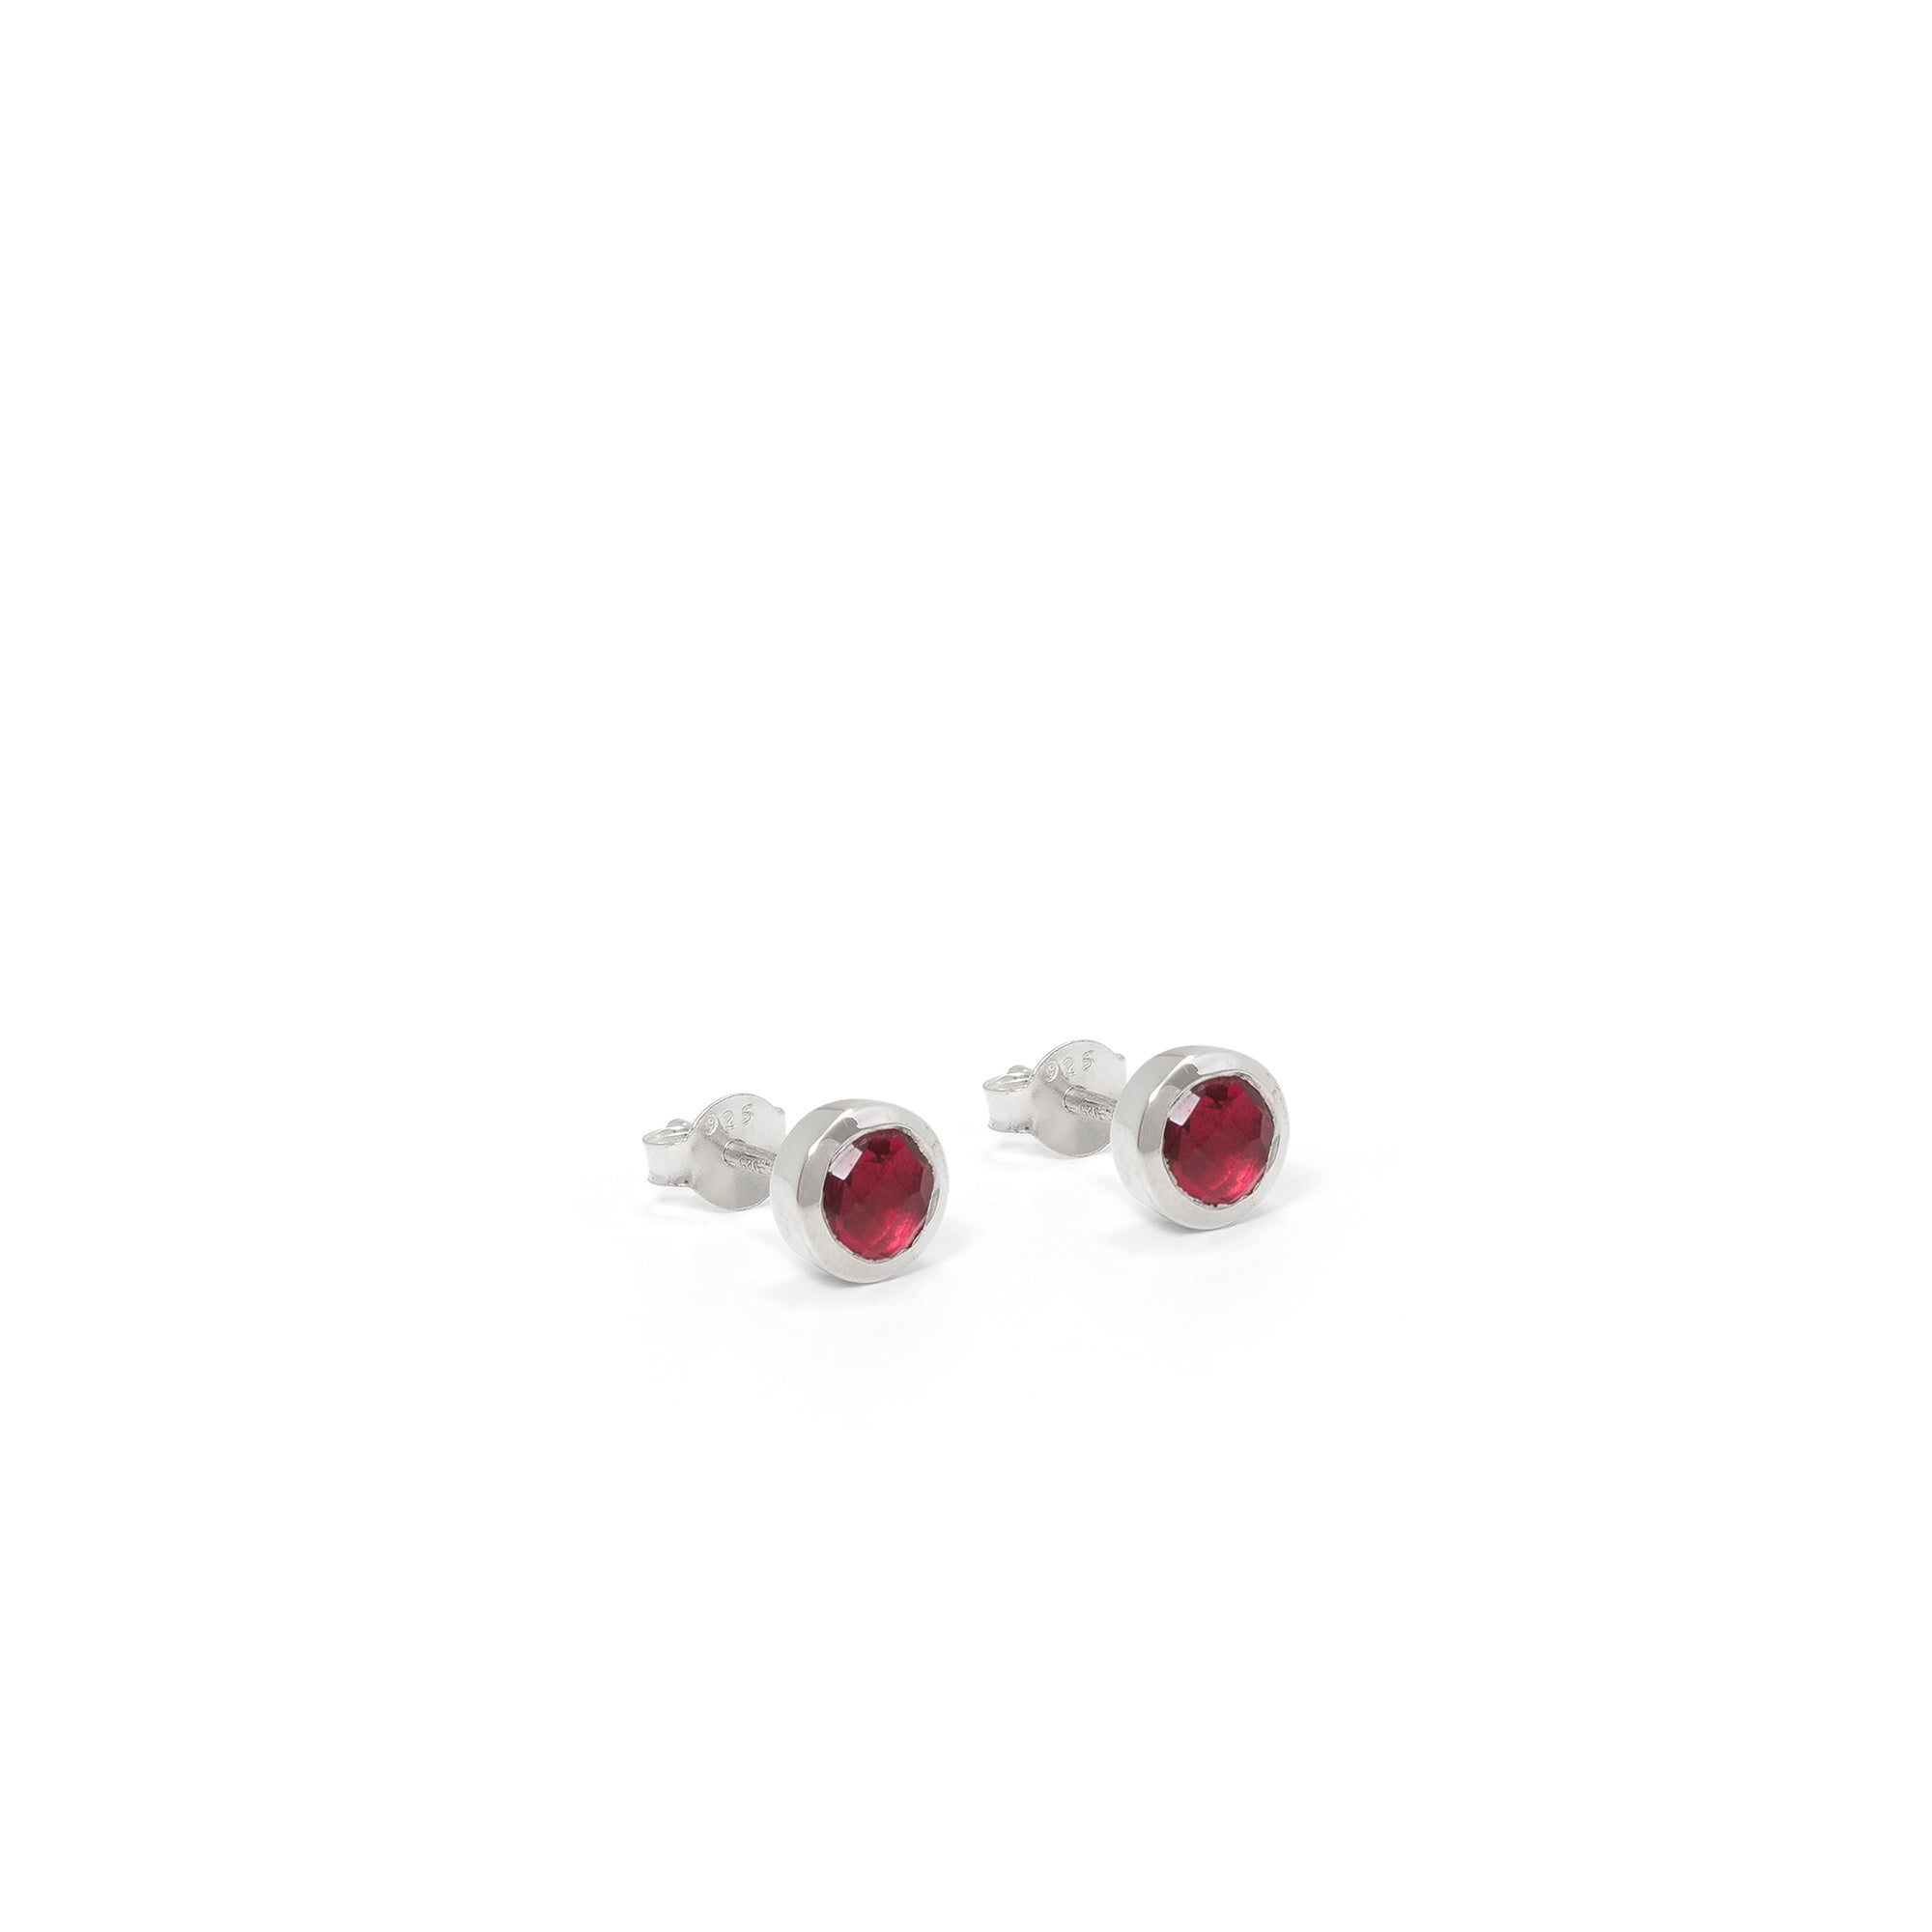 Birthstone Stud Earrings October: Pink Tourmaline and Sterling Silver